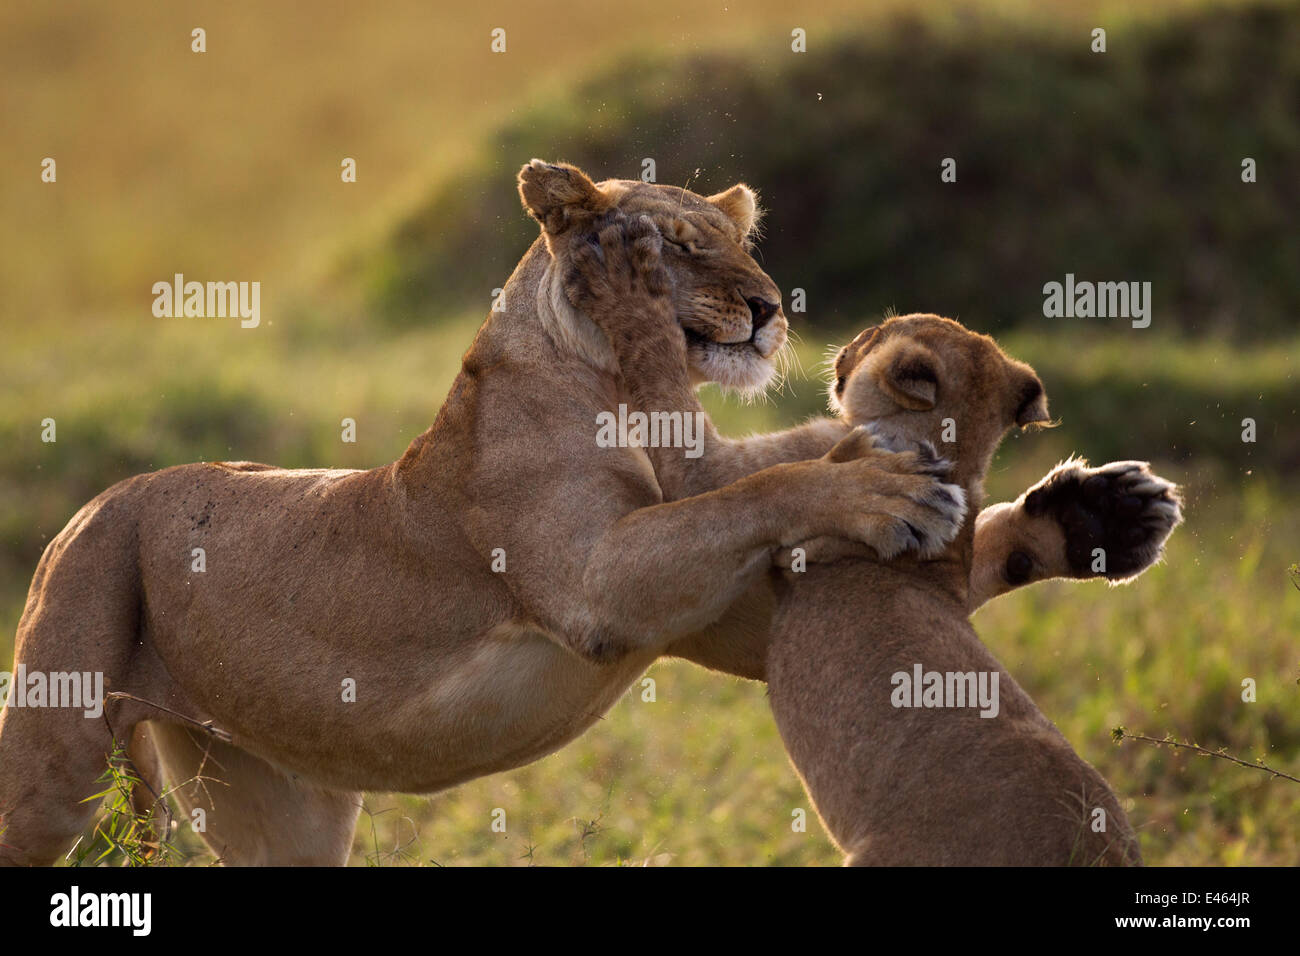 Lioness (Panthera leo) playing with a cub aged 9-12 months, Masai Mara National Reserve, Kenya, August - Stock Image